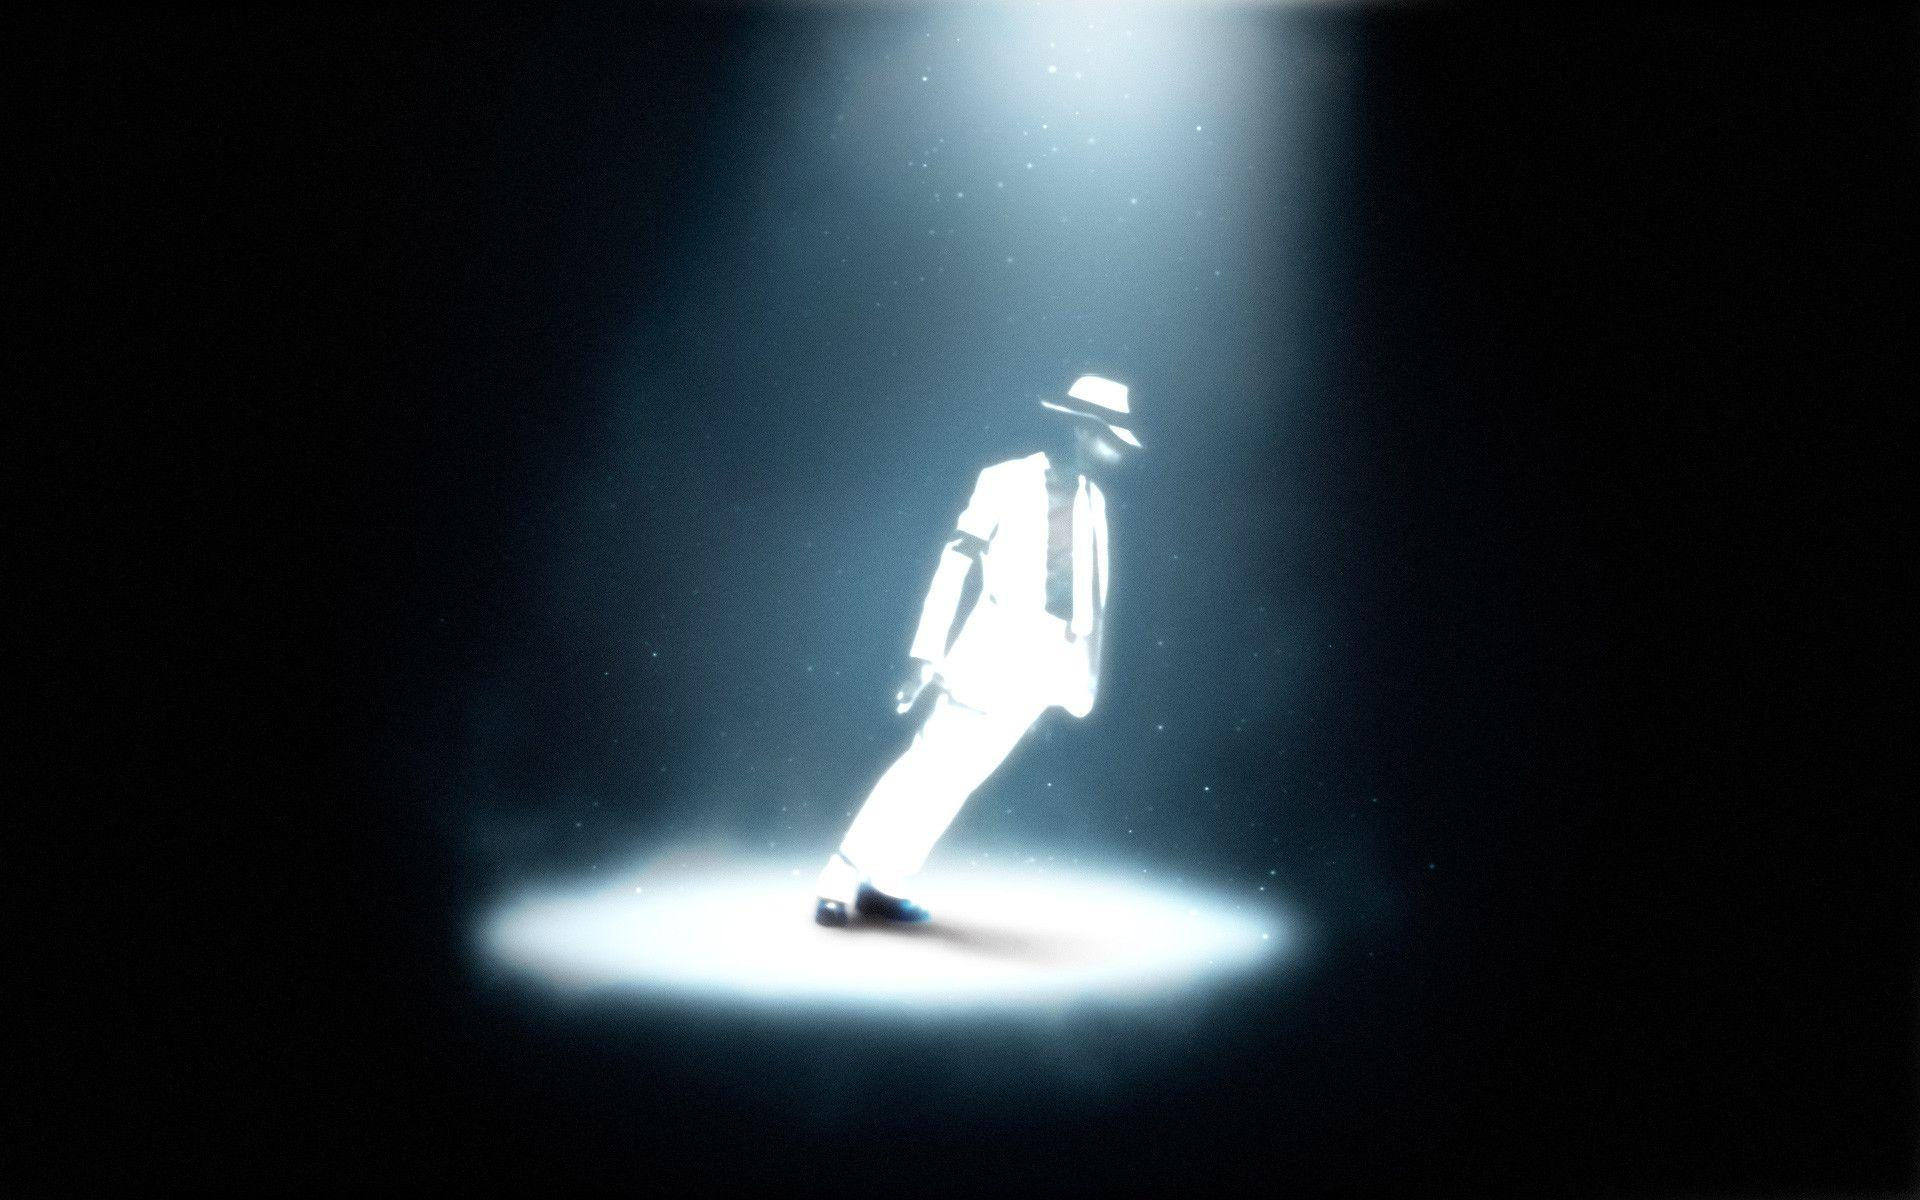 mj wallpapers hd - wallpaper cave